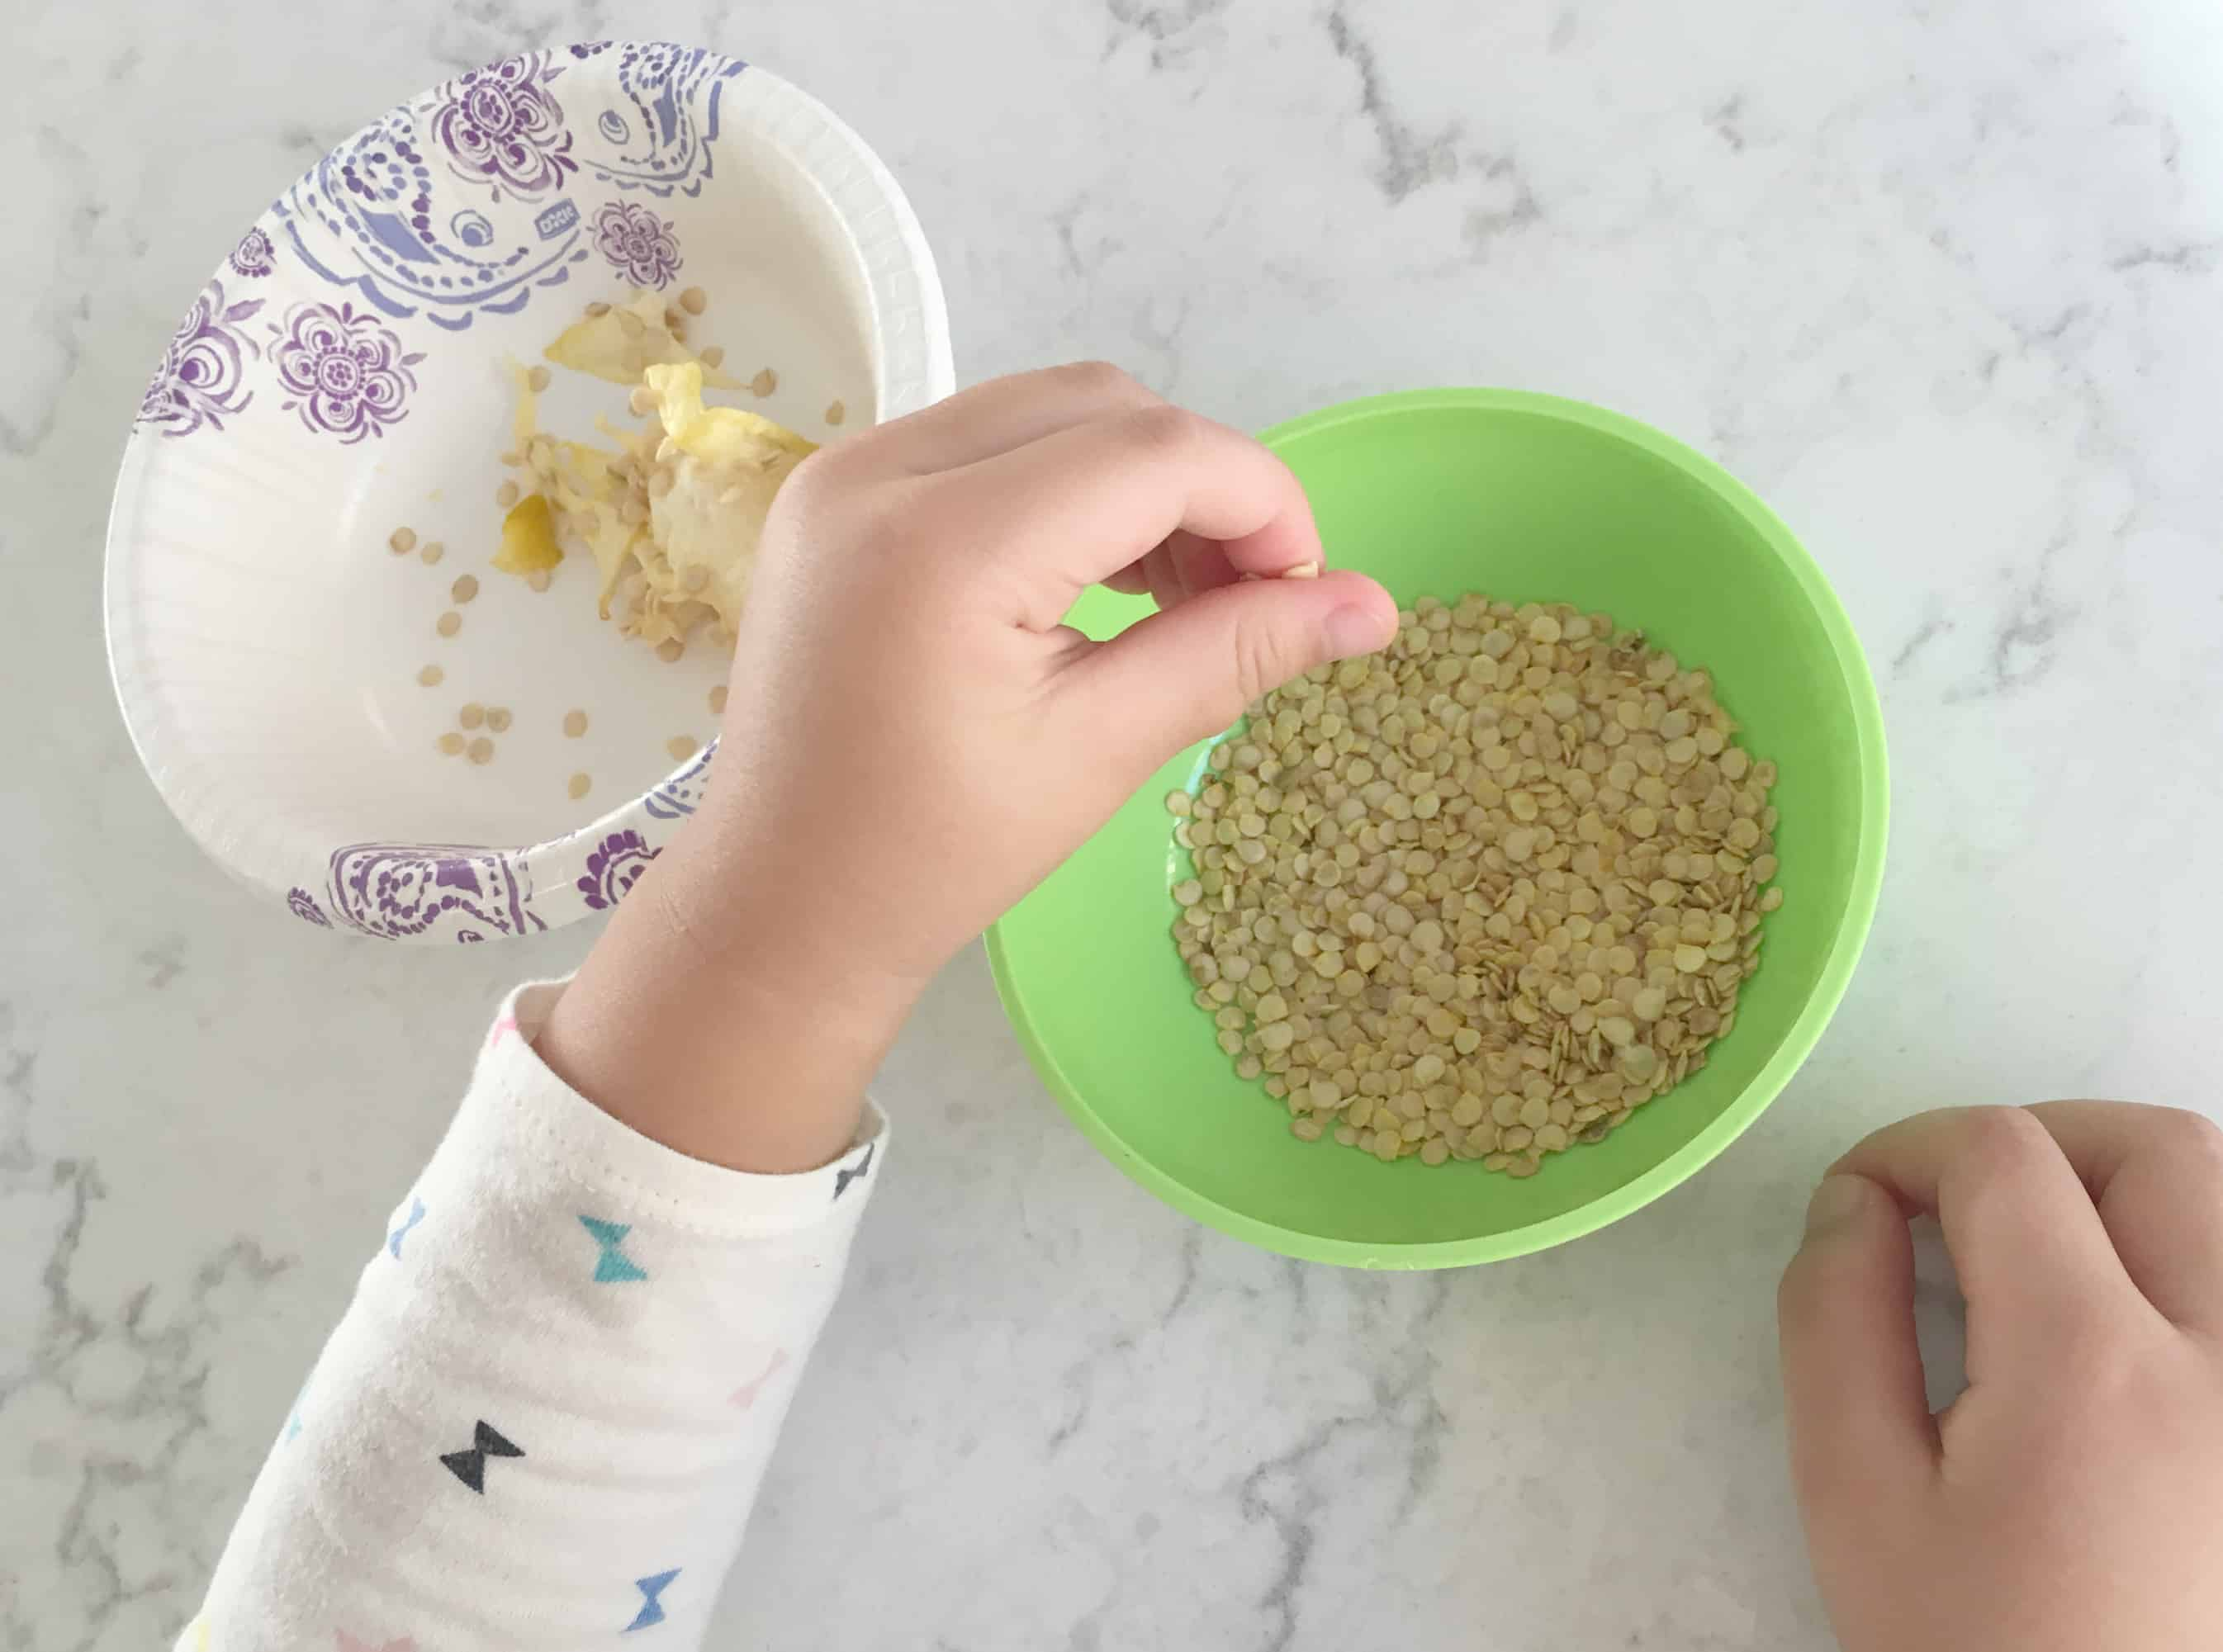 Pepper seeds fine motor skills activity for young children - Montessori inspired activity